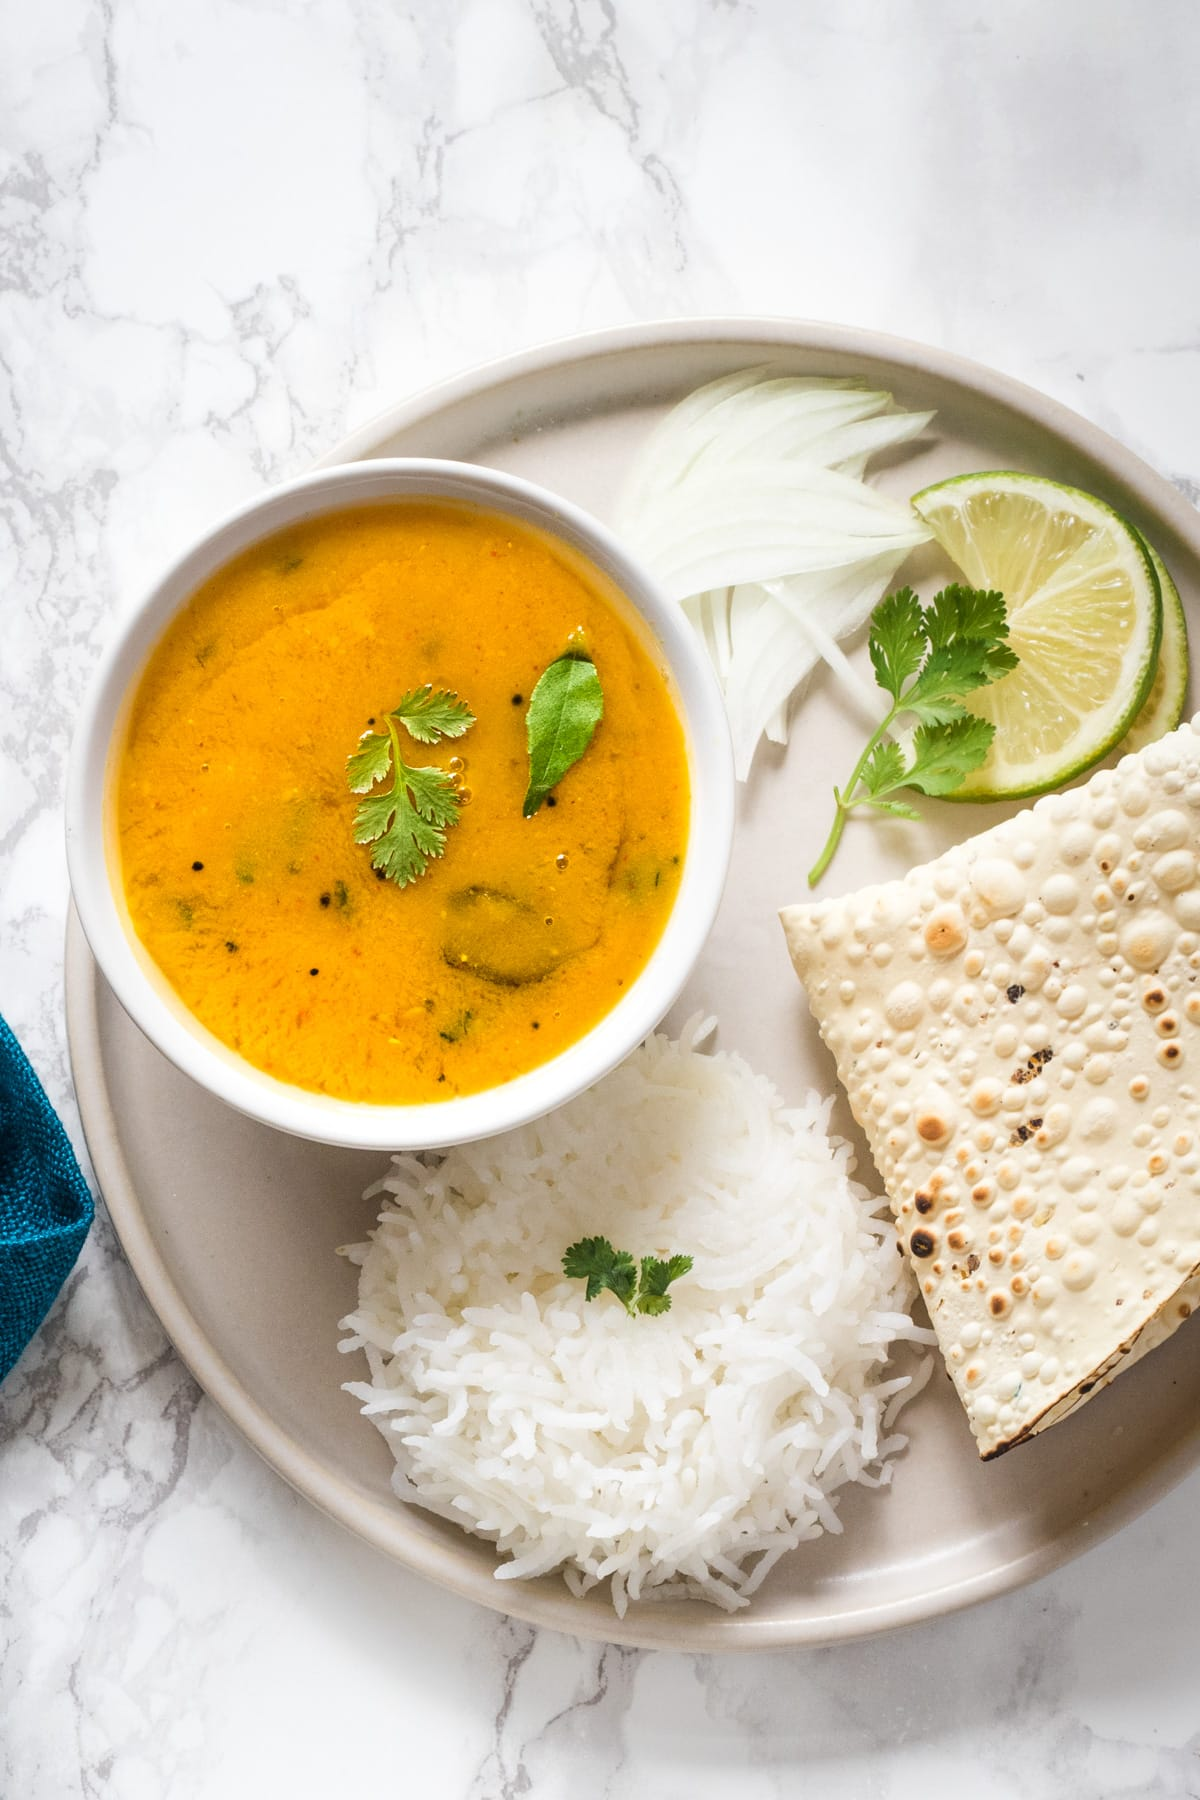 a plate with a bowl of dal, rice, papad, sliced onions and lemon slice with garnish of cilantro leaves.